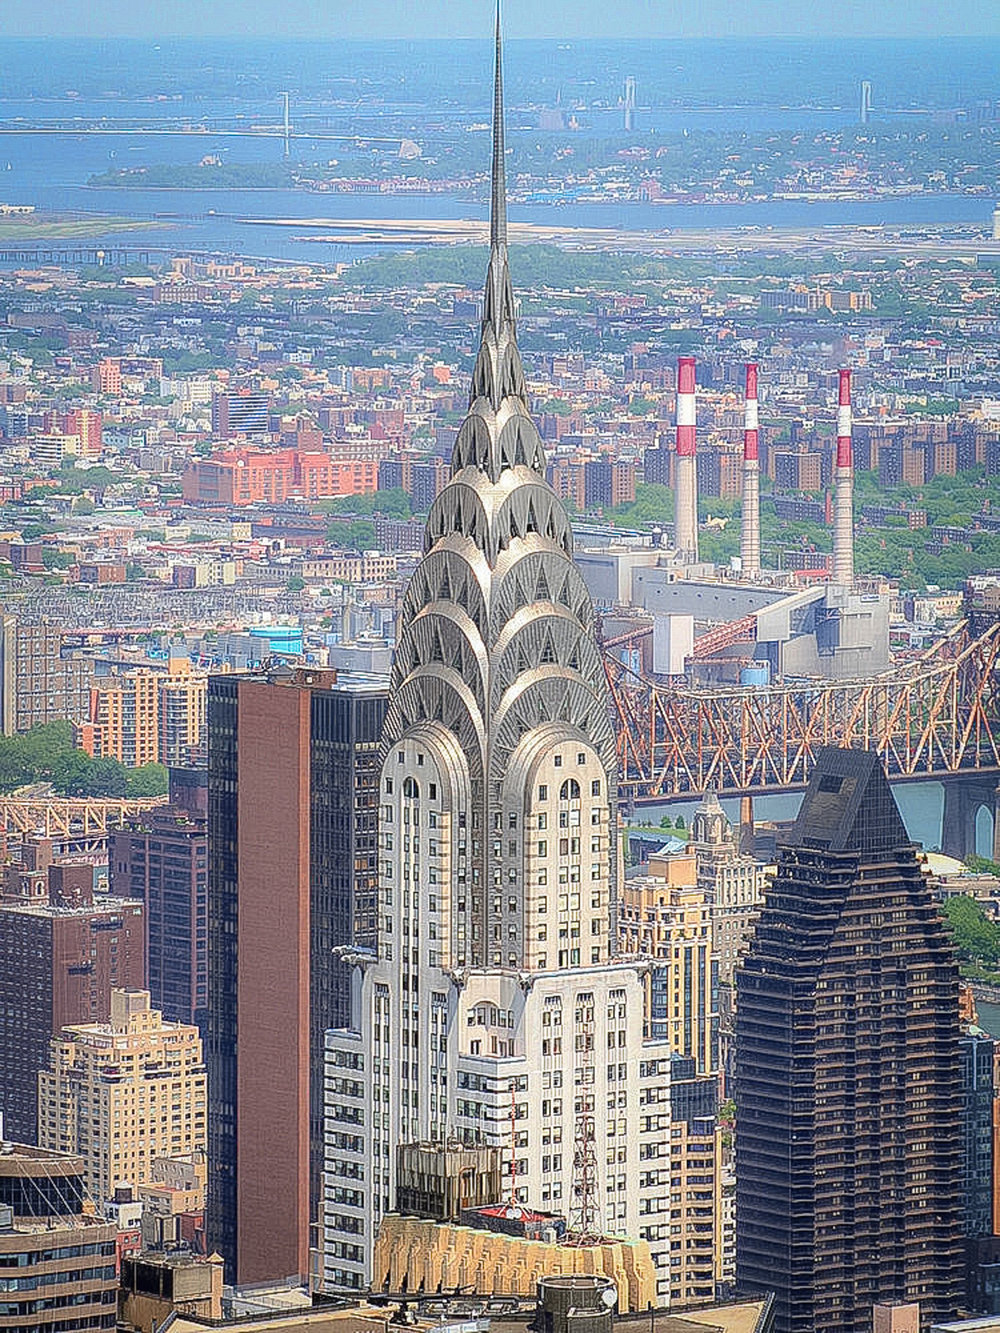 chrysler building from the empire state building observatory. photo: lucas compan